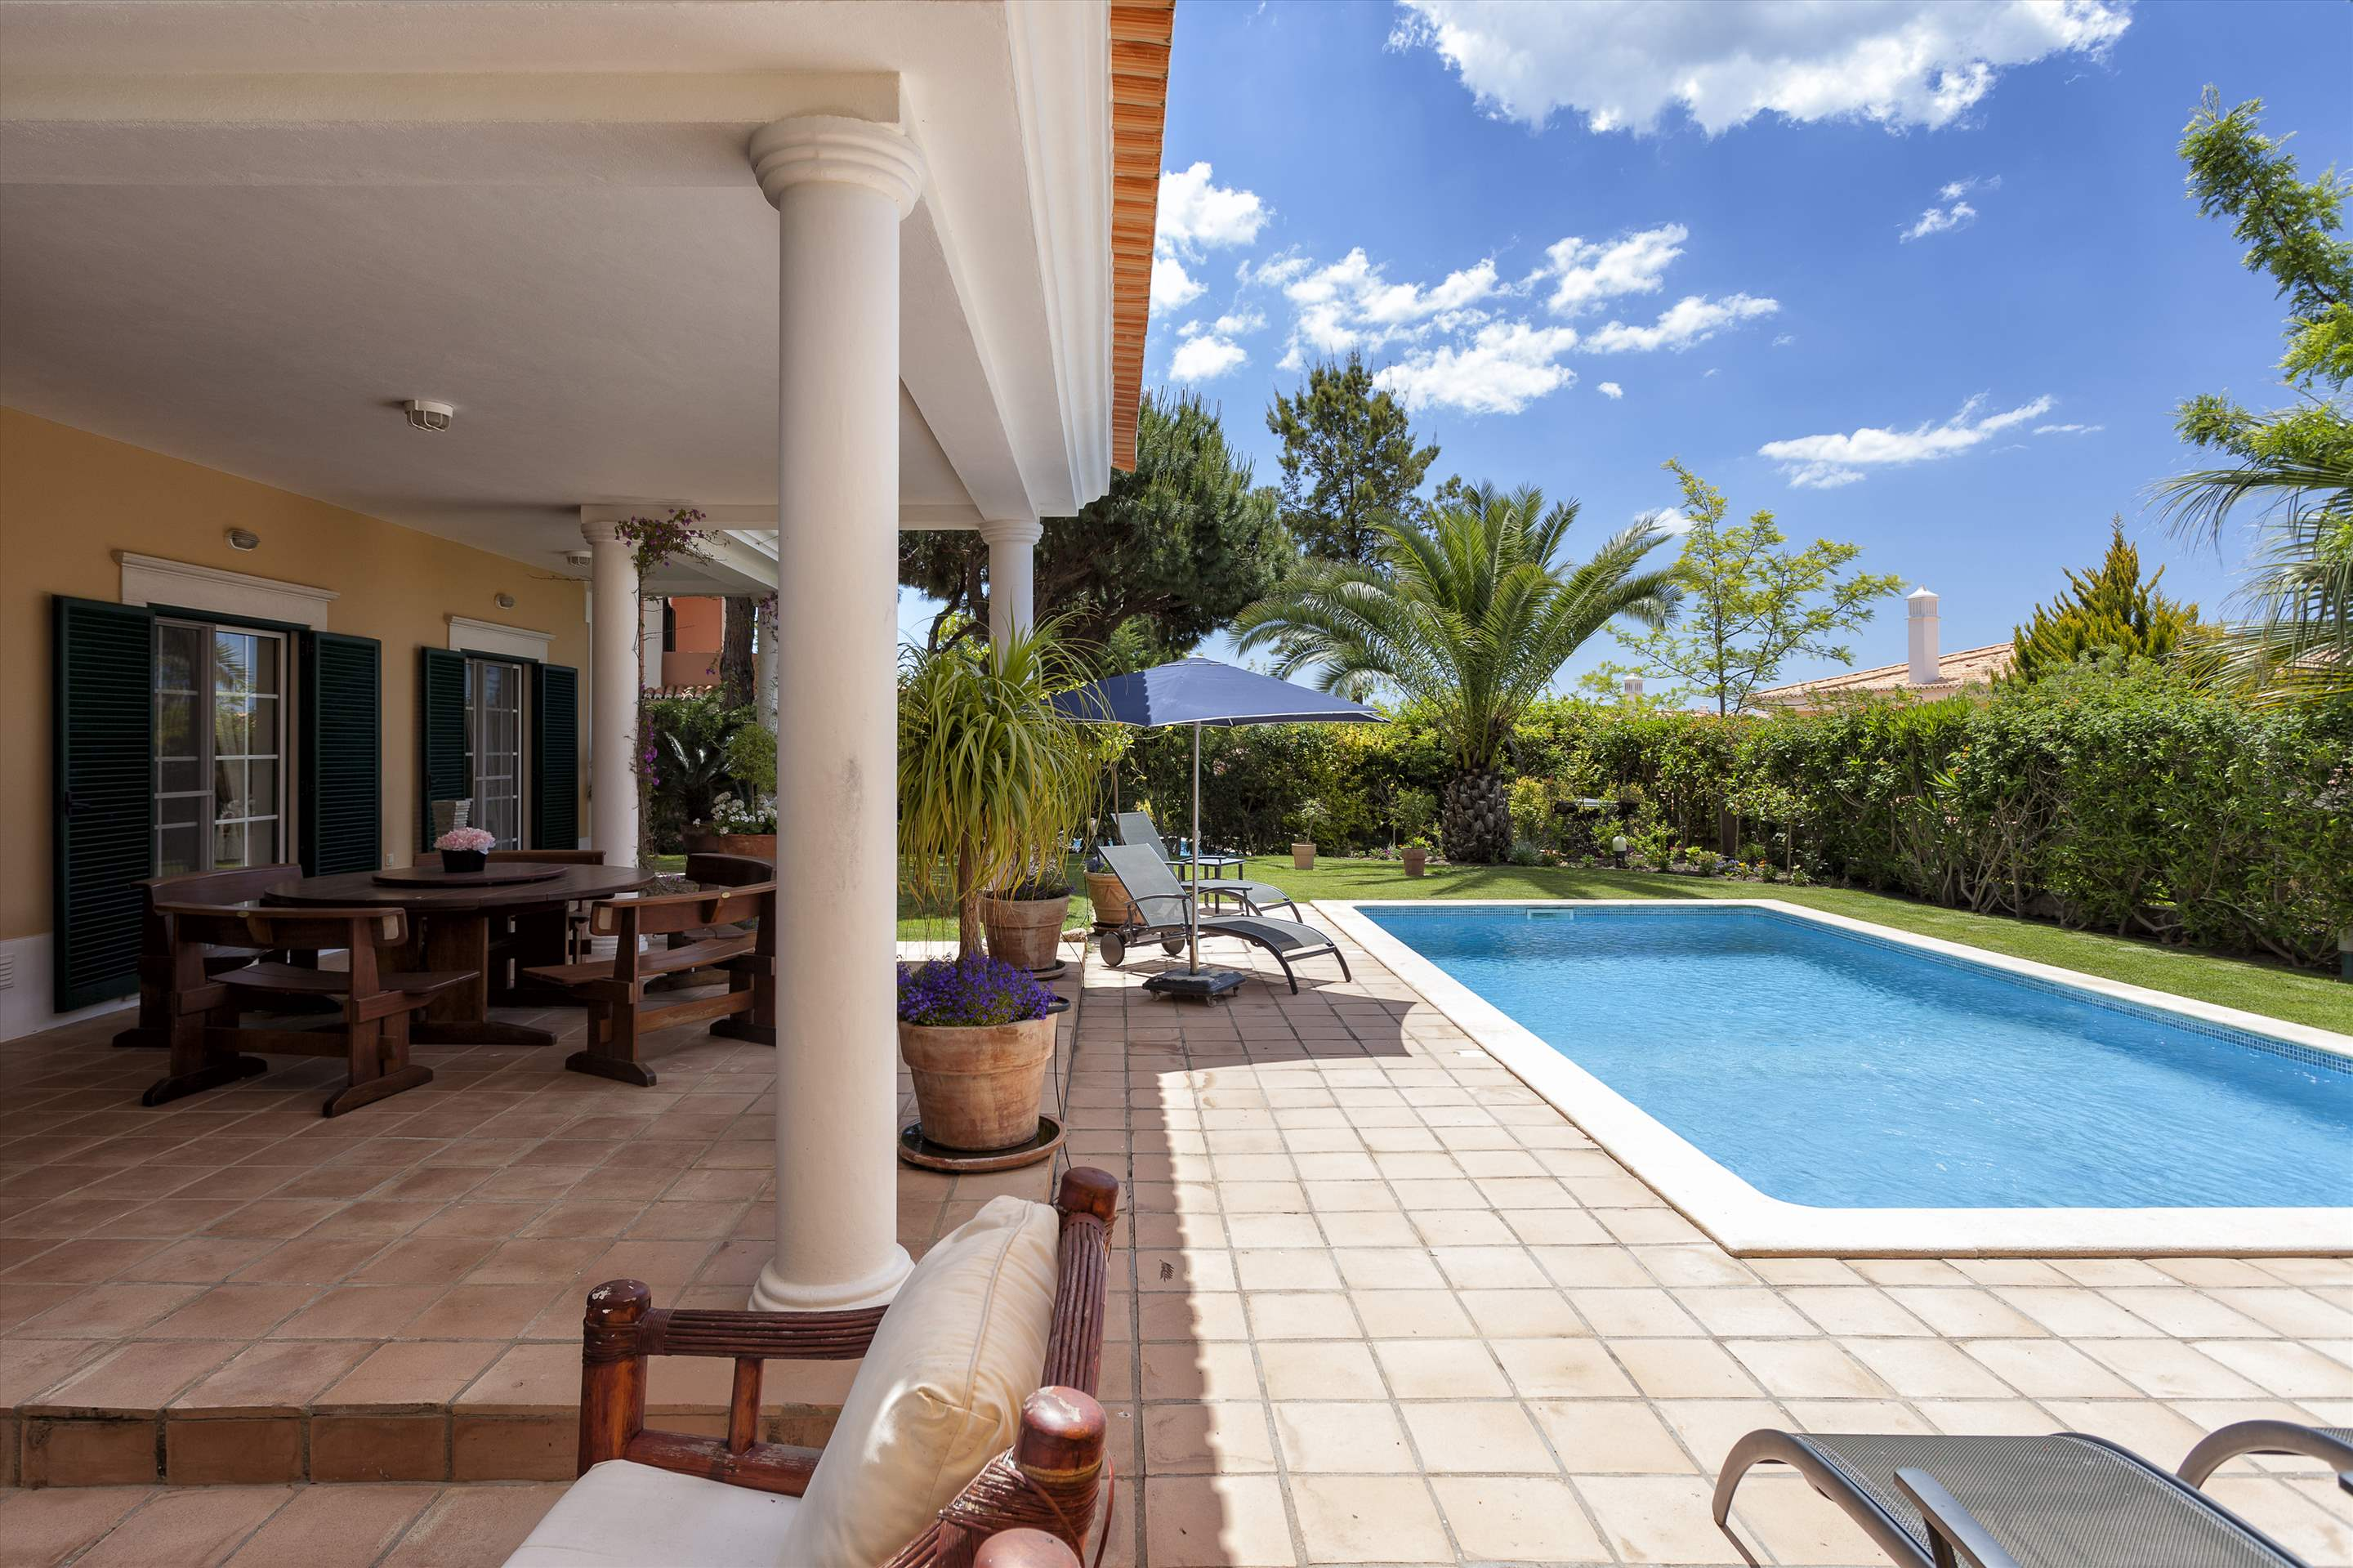 Martinhal Quinta Villa (4 Bedrooms), 4 bedroom villa in Martinhal Quinta Resort, Algarve Photo #14